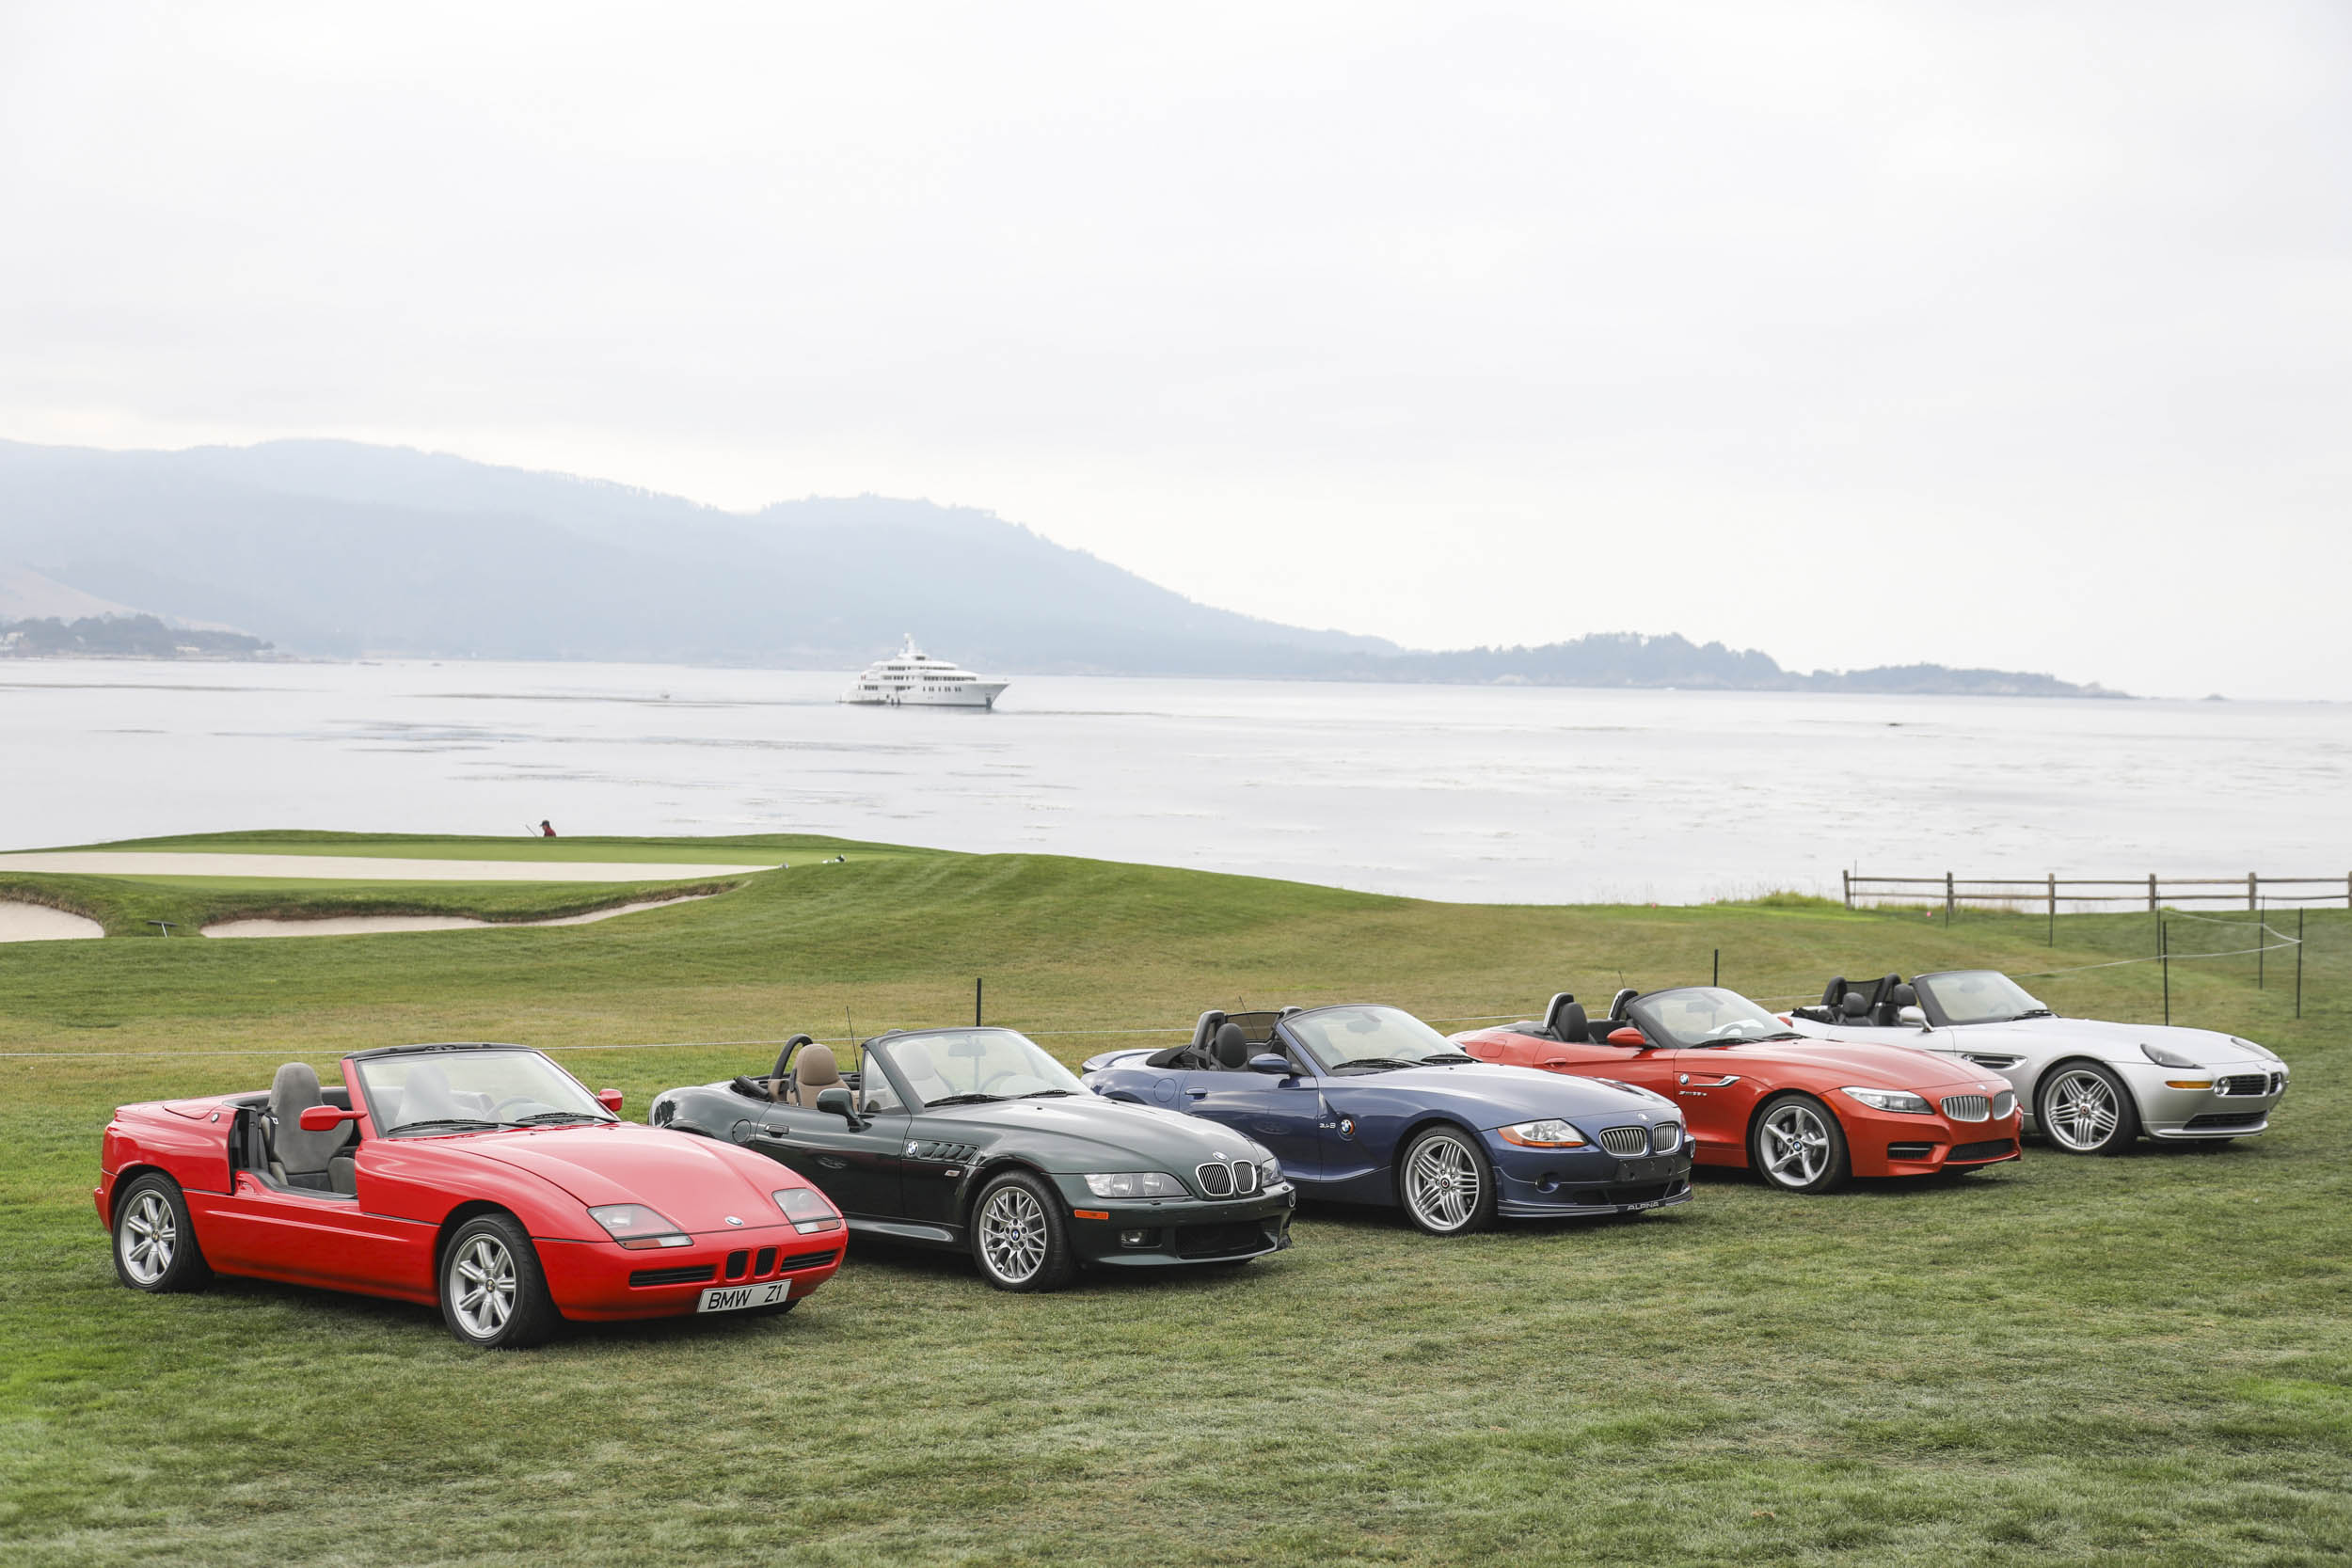 BMWs on the lawn of Pebble Beach